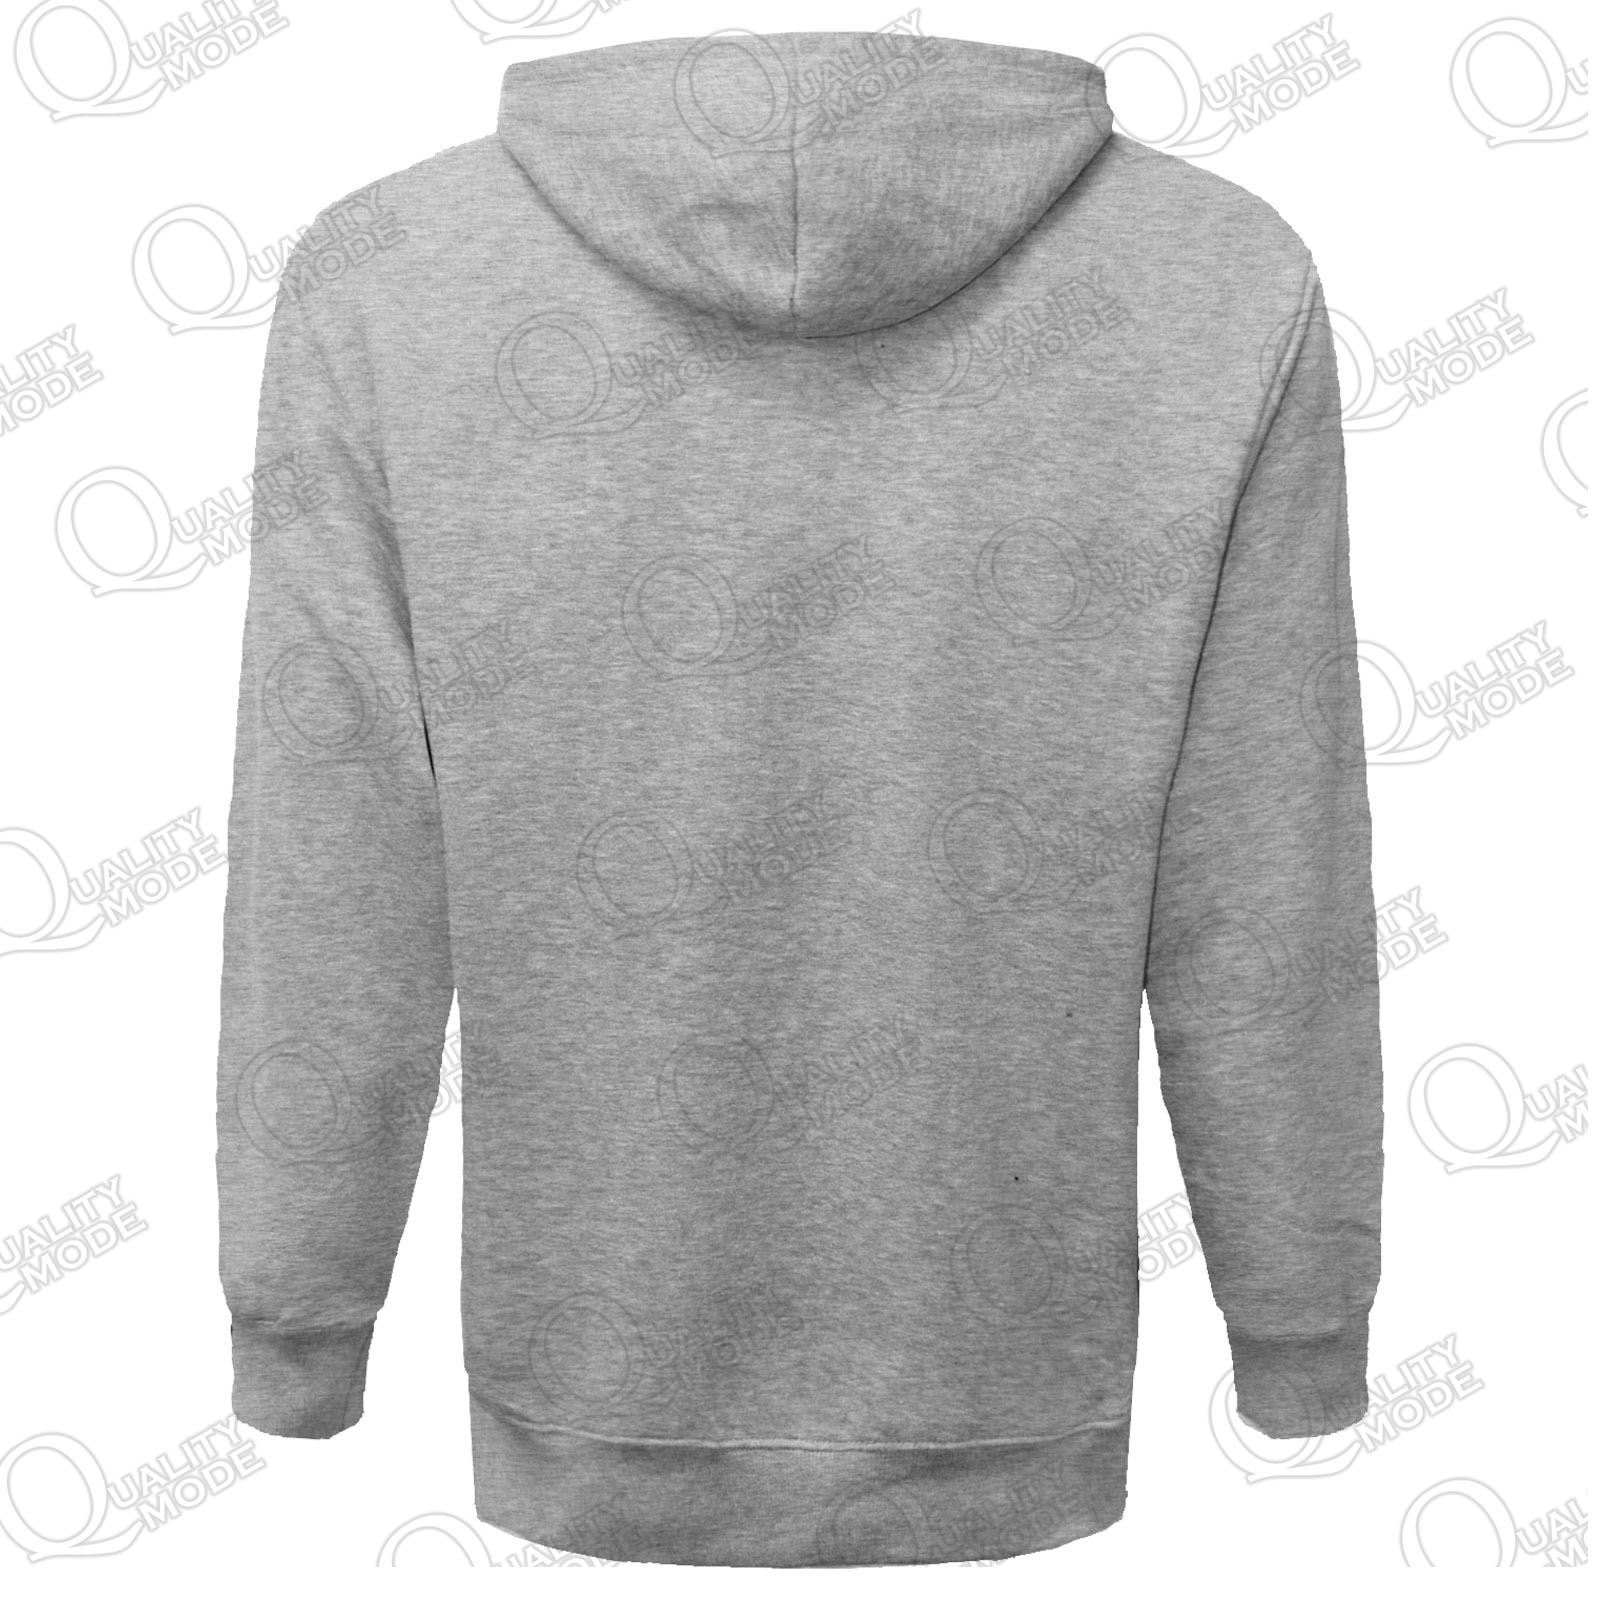 Buy low price, high quality printed jumpers mens with worldwide shipping on getdangero.ga